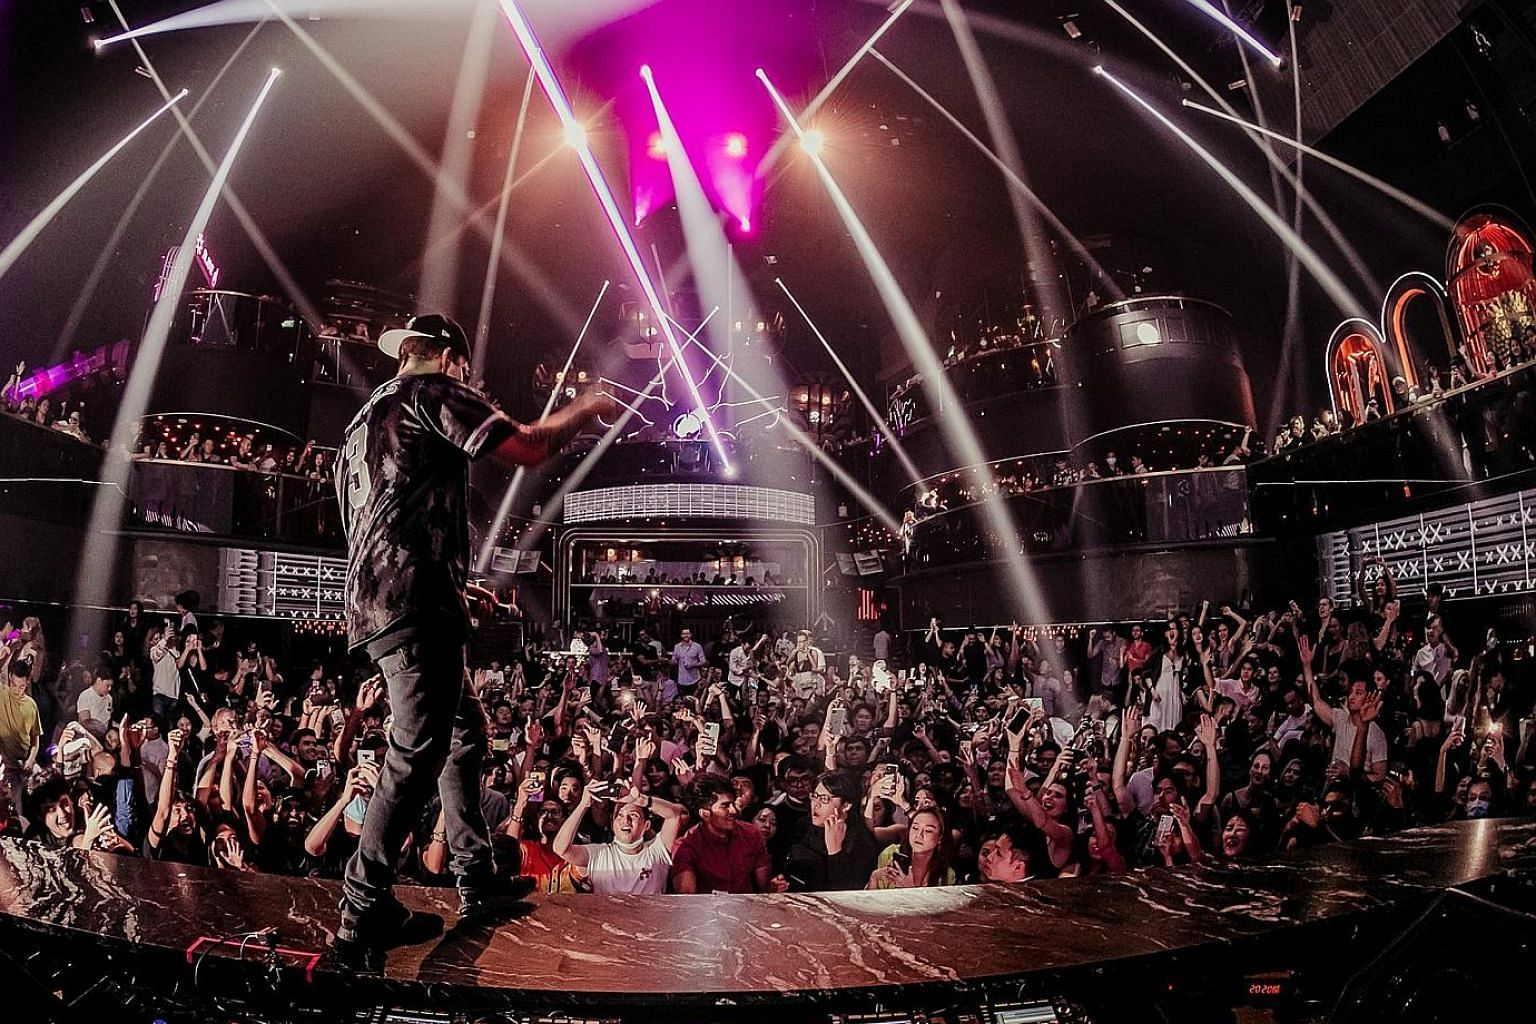 It was a sizeable crowd at Marquee Singapore in Marina Bay Sands last week when DJ Illenium played his set.